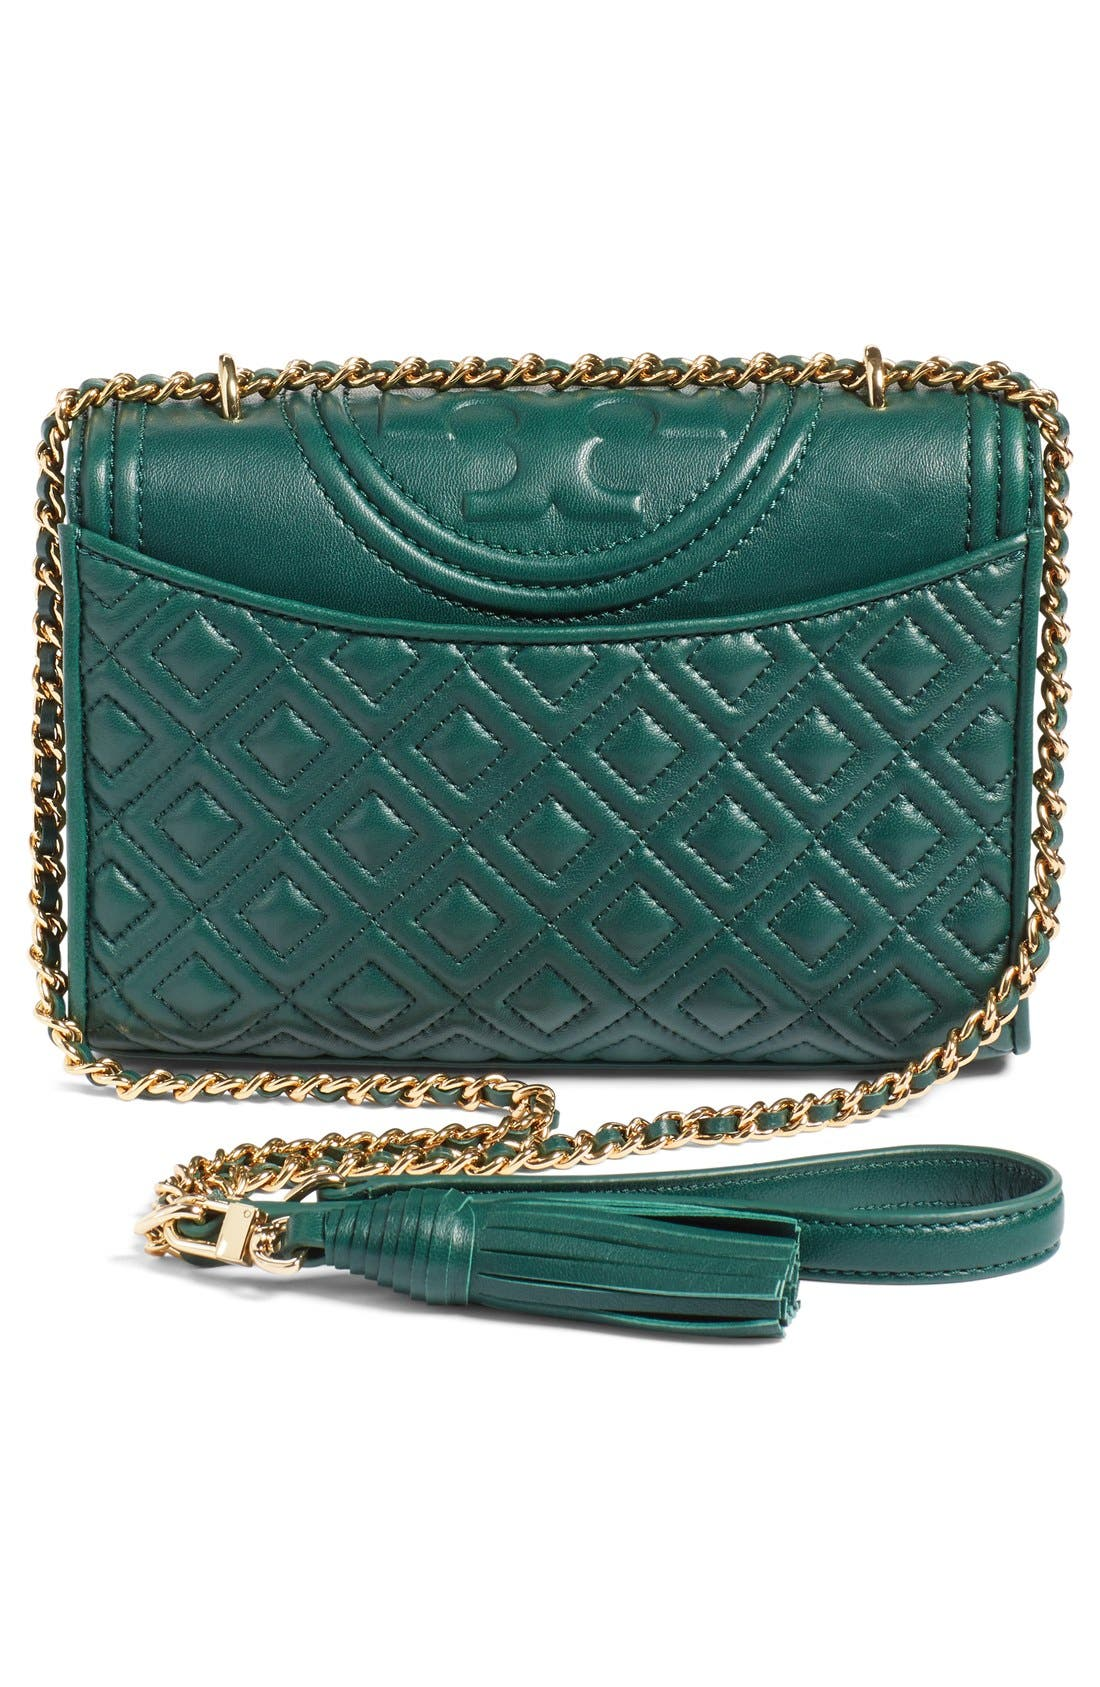 'Small Fleming' Quilted Leather Shoulder Bag,                             Alternate thumbnail 11, color,